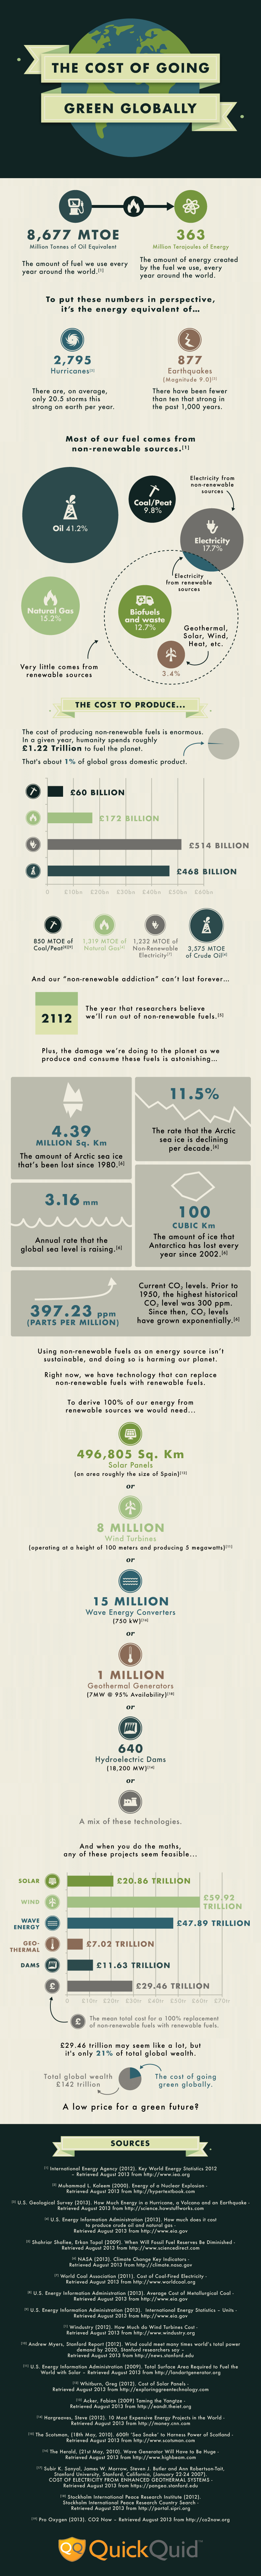 cost of going green globally infographic